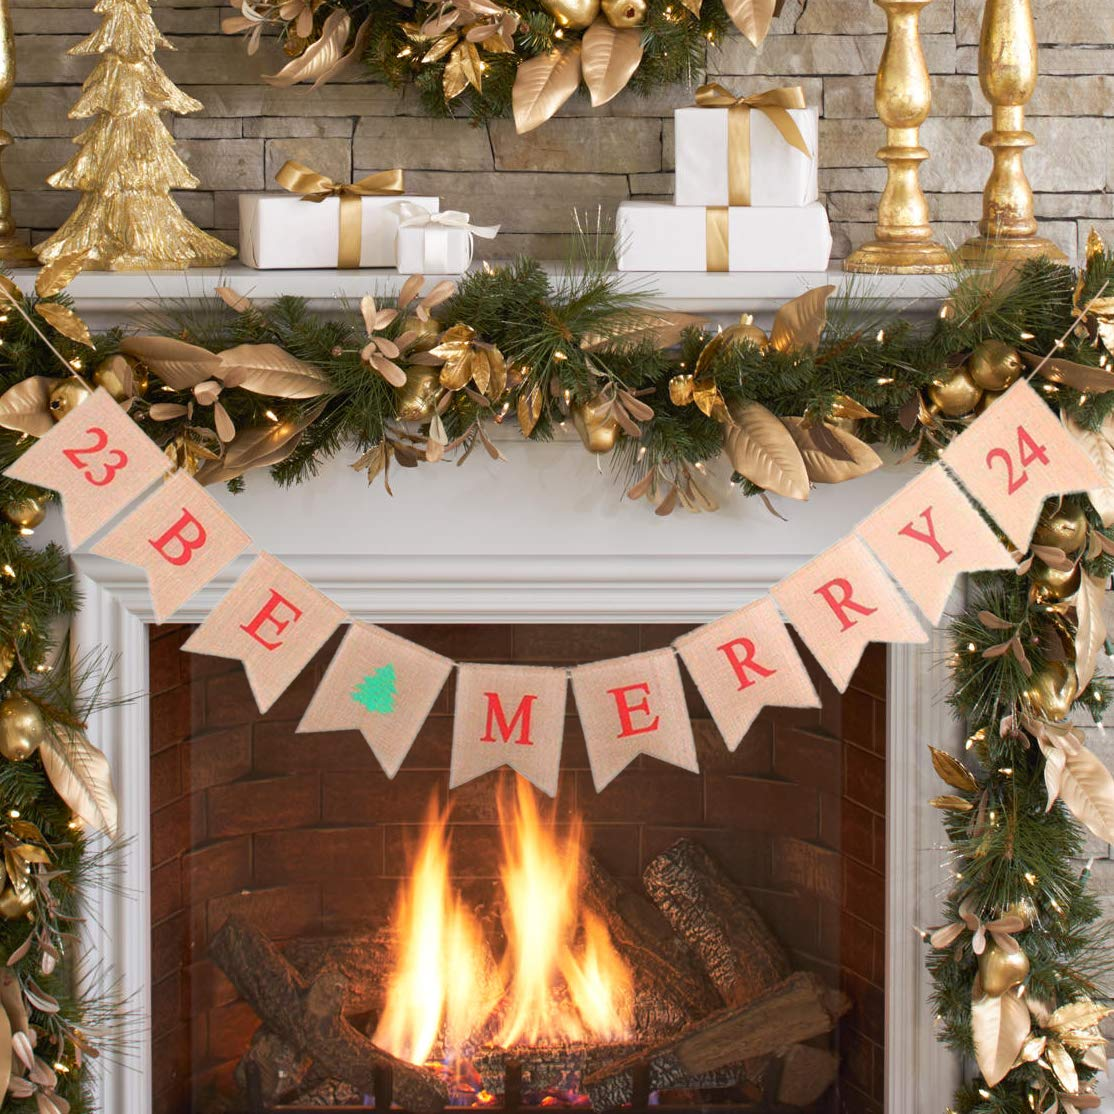 Buy Christmas Decorations Be Merry Burlap Banner, Merry Christmas